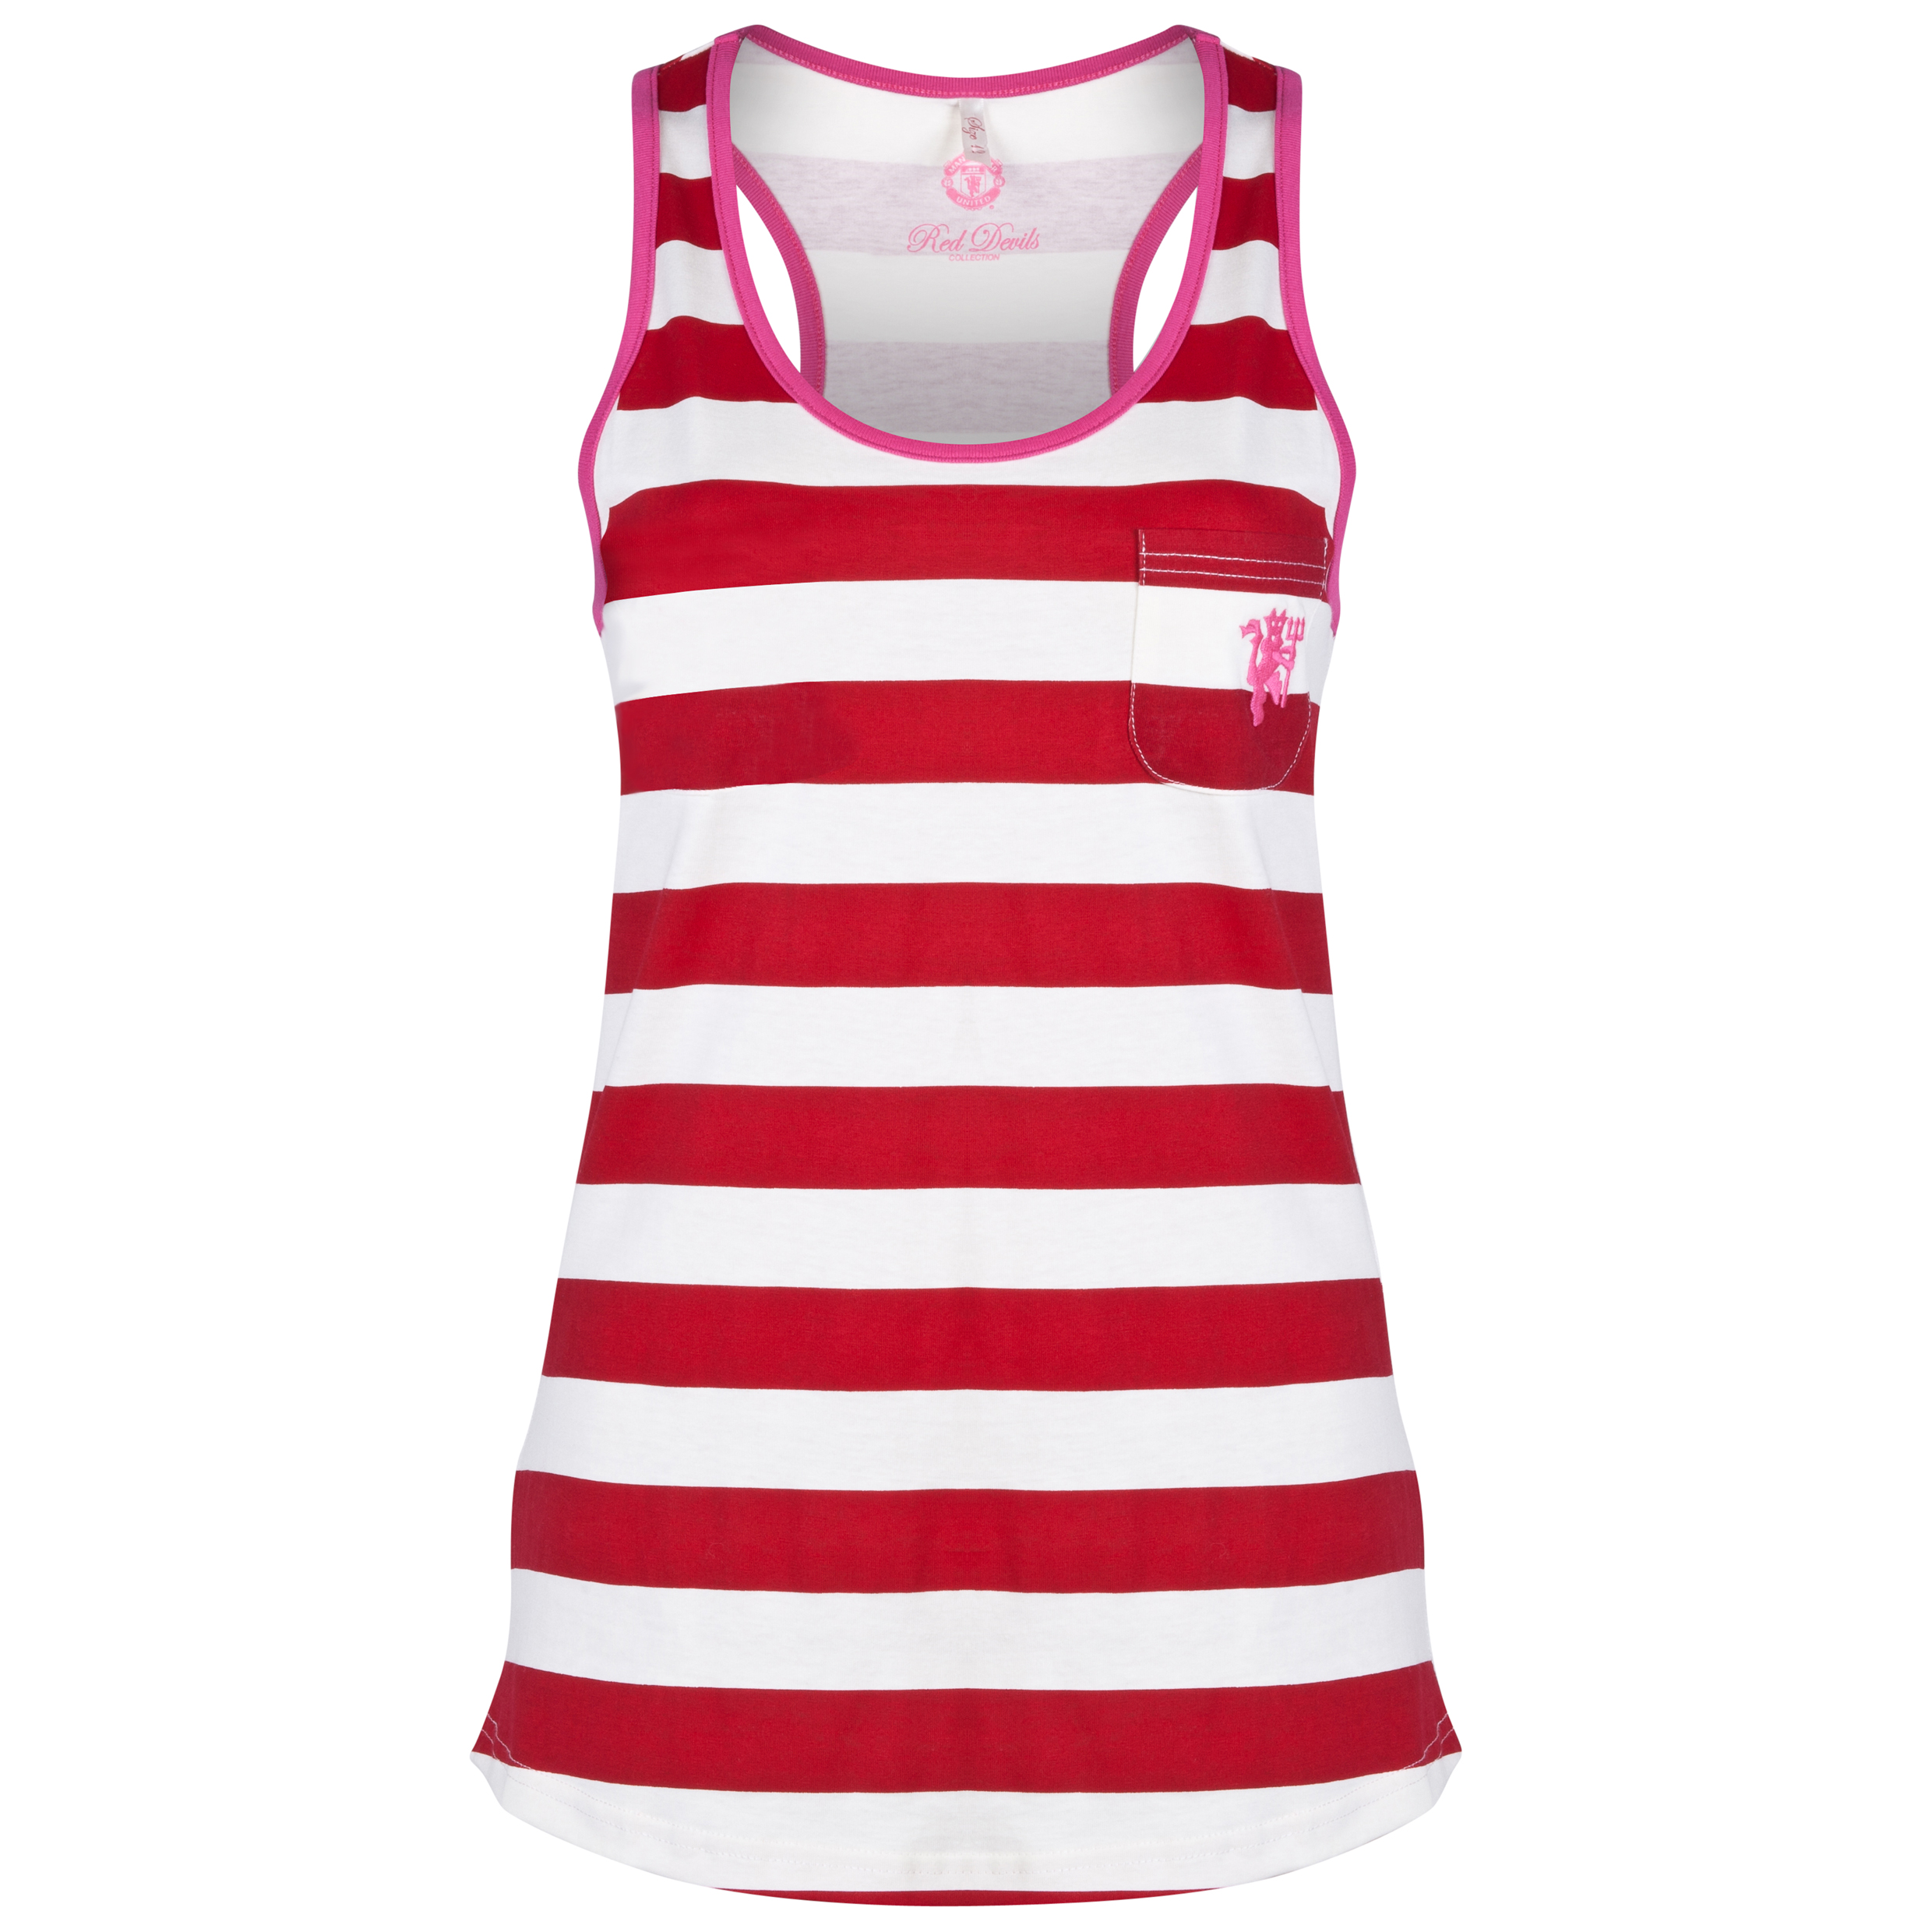 Manchester United Striped Vest - Womens Red